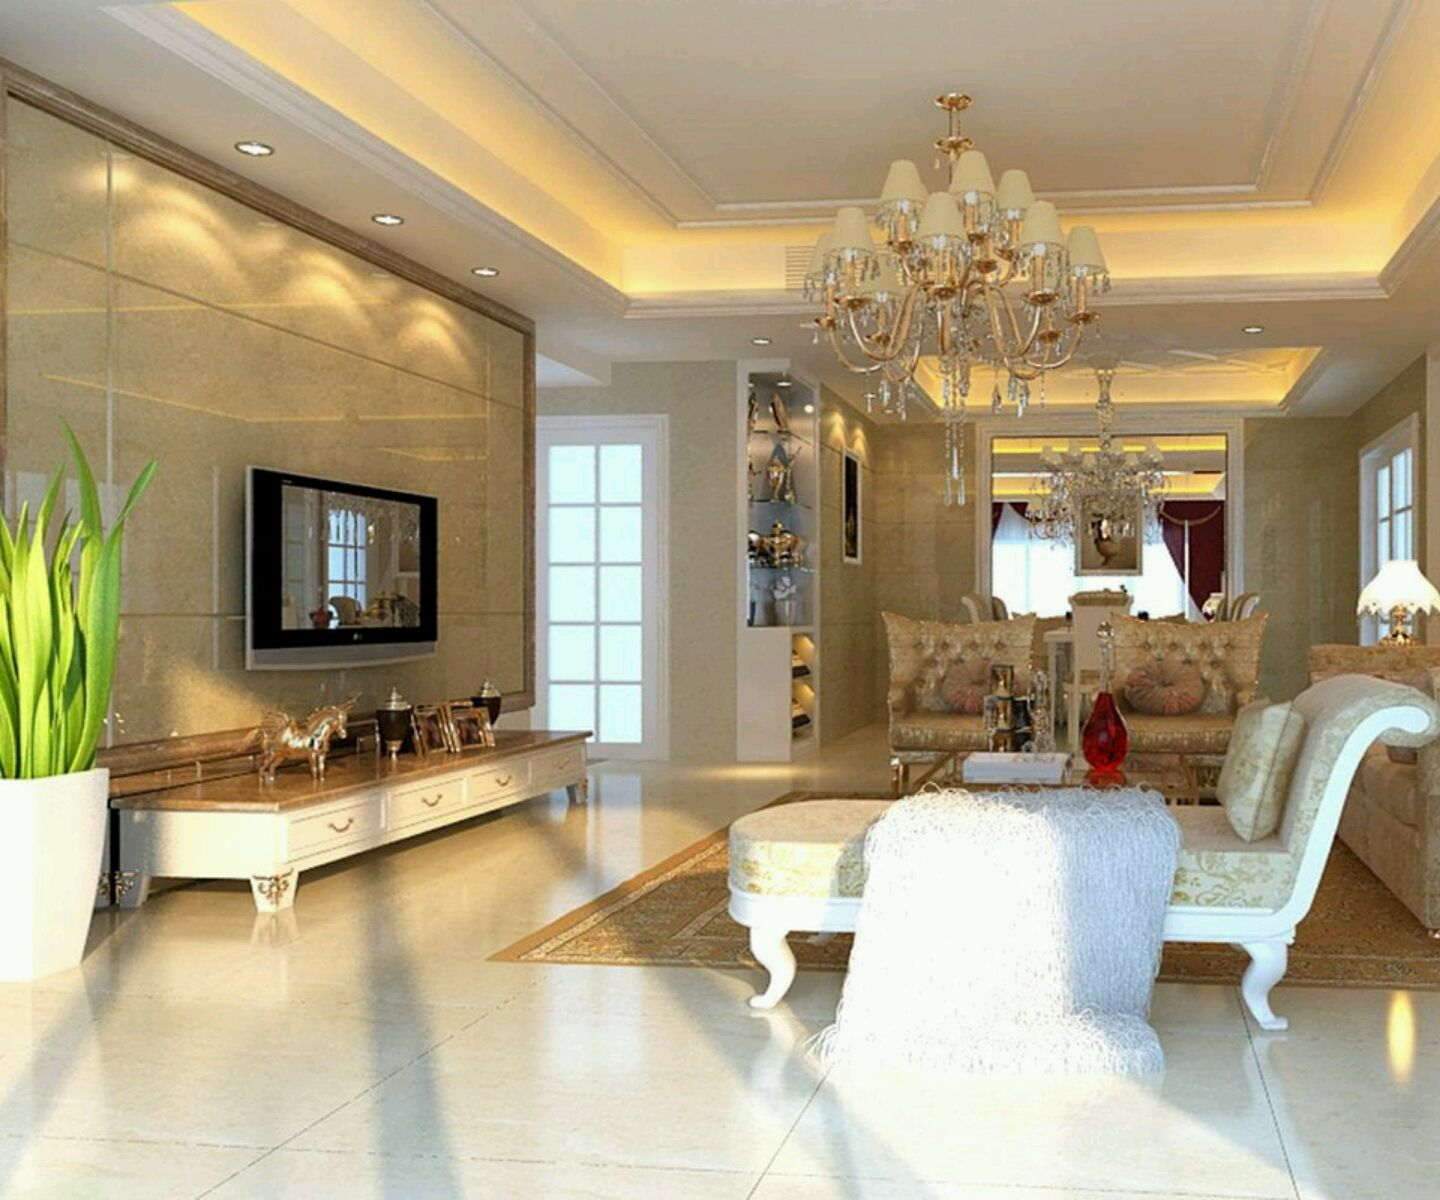 Stunning House Room Ideas. Luxury homes interior decoration living room designs ideas  New